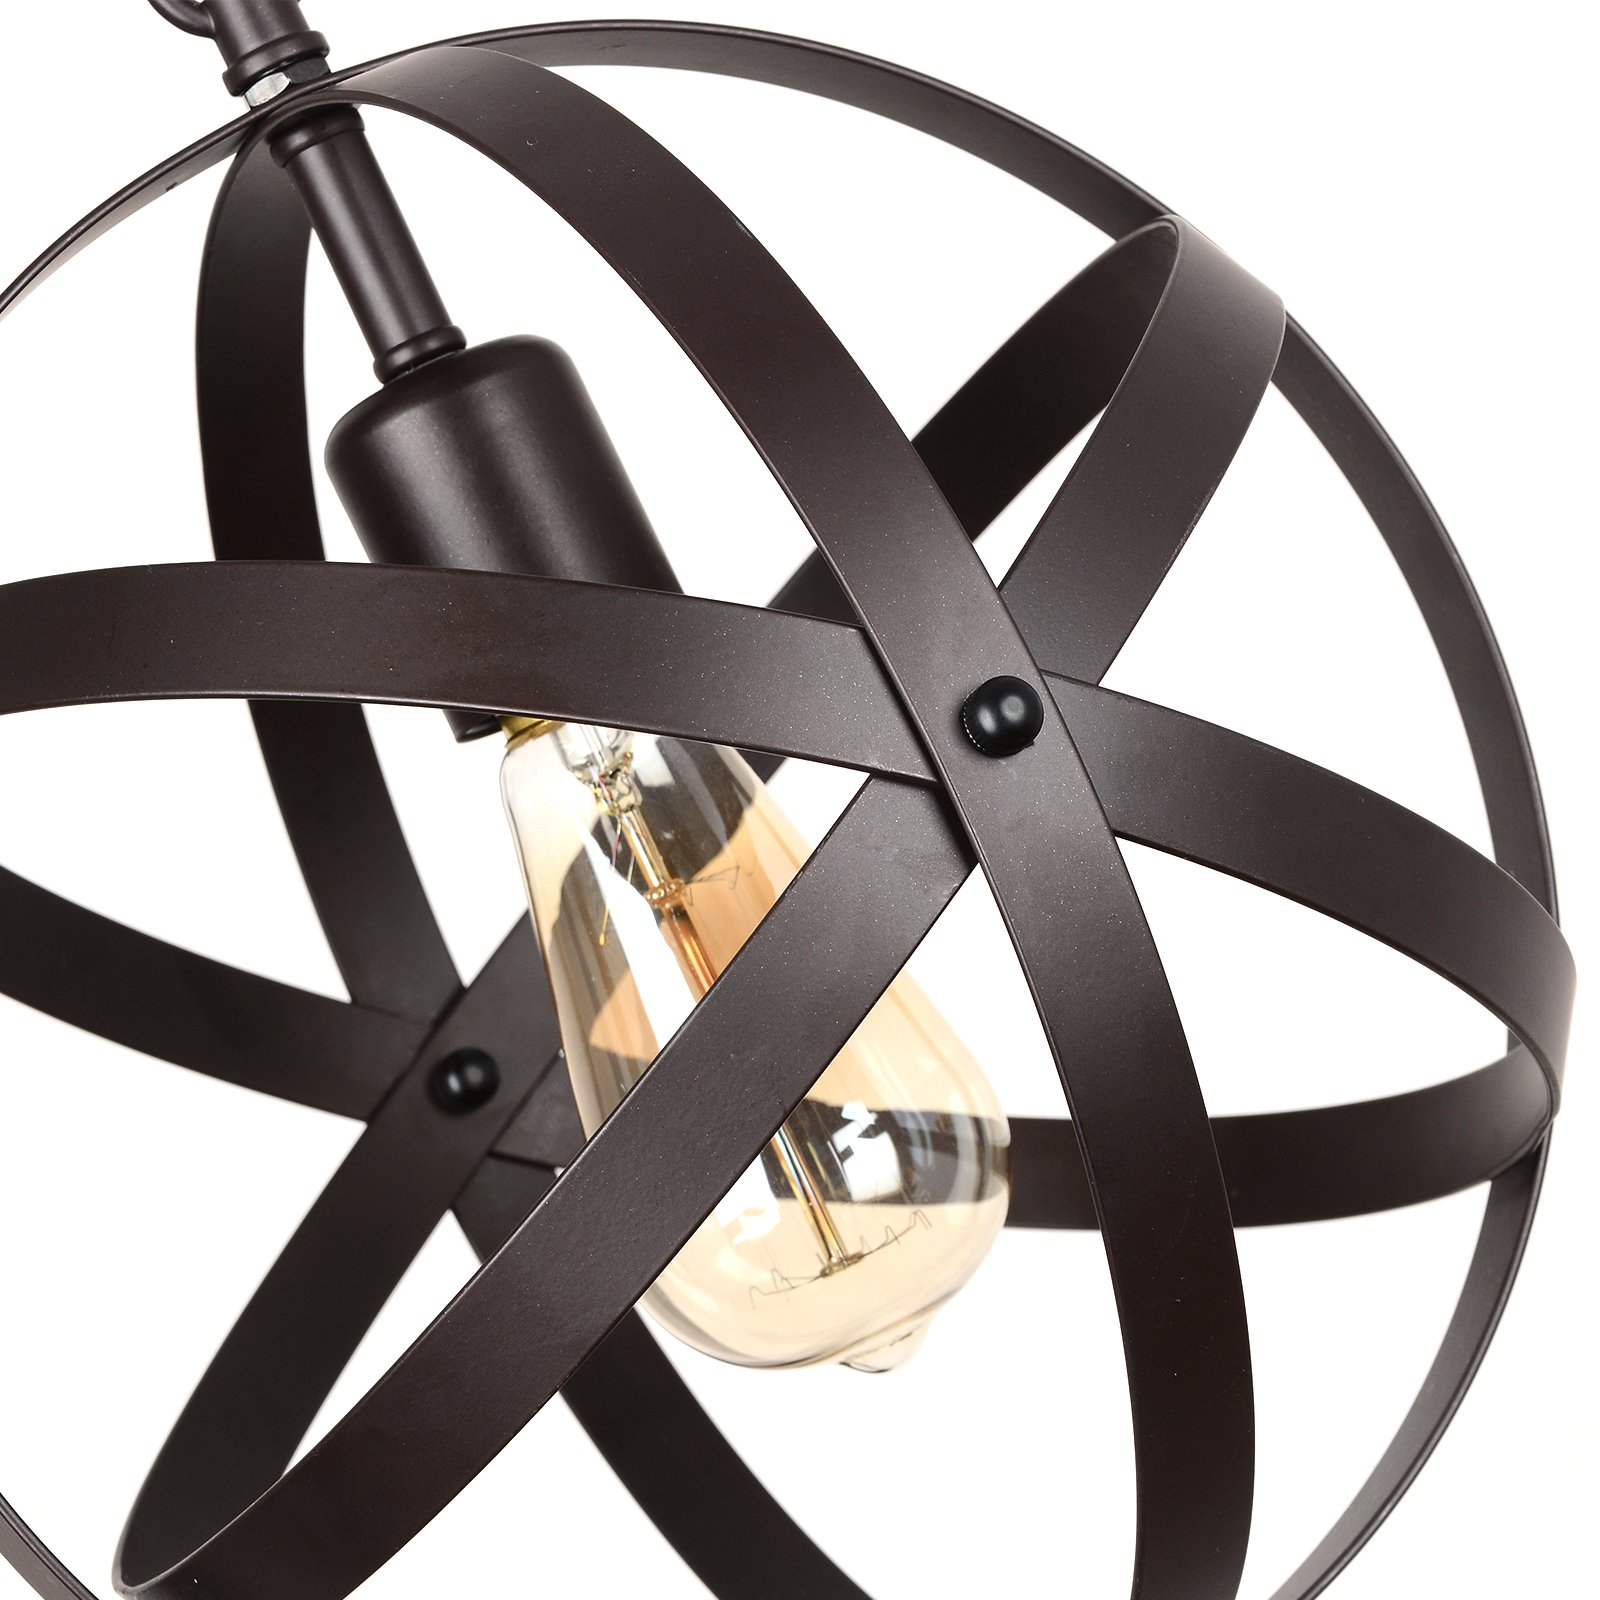 Creatgeek Industrial Globe Chandelier with 15 Ft Plug in Cord, Metal Hanging Chain and On/Off Dimmer Switch, Perfect Vintage Oil Rubbed Bronze Orb Swag Pendant Lights for Home Decor by Creatgeek (Image #6)